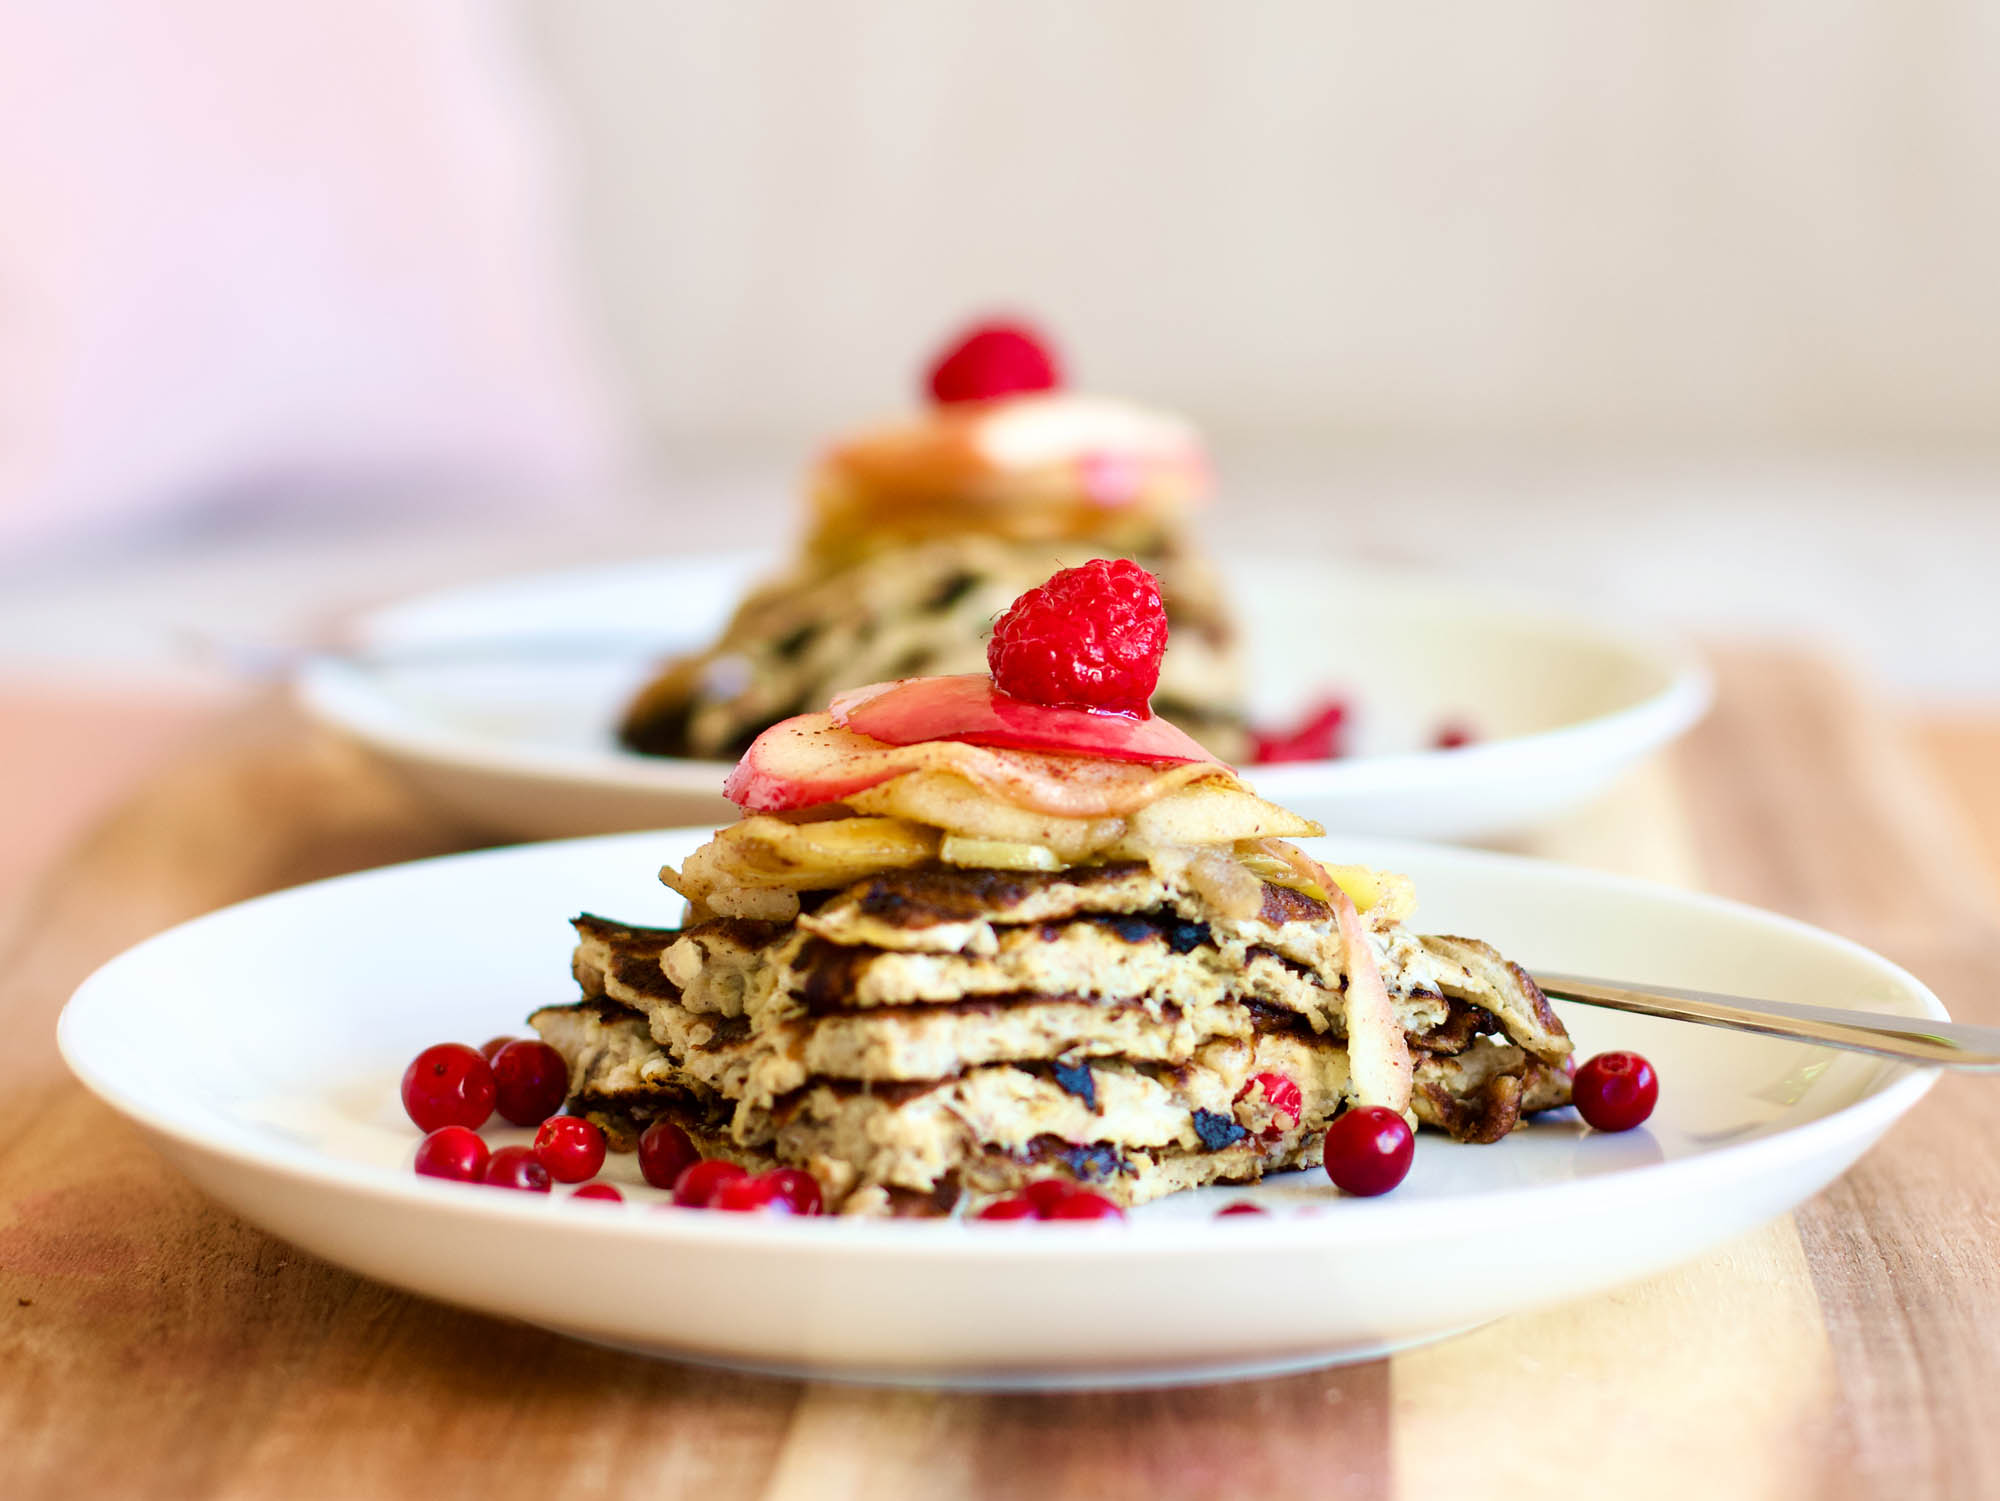 Easy Keto Pancakes with Apple Slices and Berries